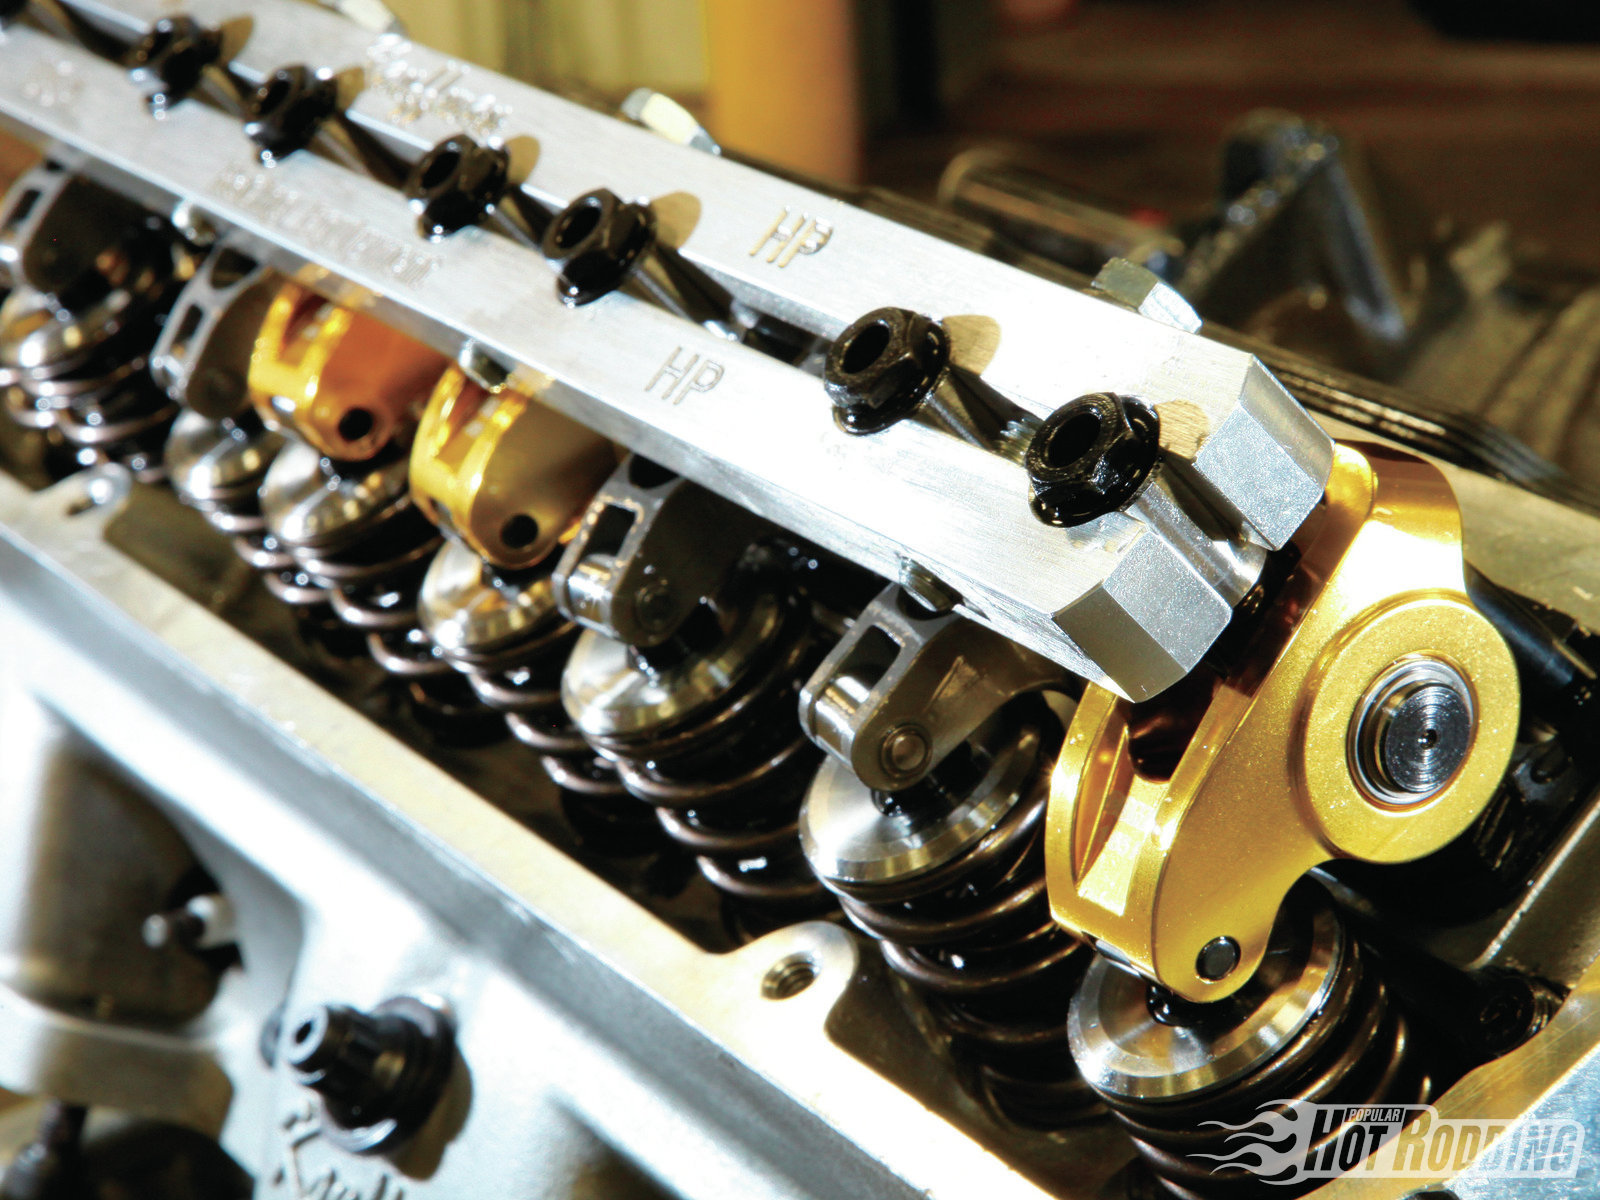 The stud-mounted valvetrain features both COMP and Crower rockers, as testing showed a slightly reduced ratio on the exhaust side improved power. The intake ratio specs at 1.7:1, while the exhaust is 1.65:1. The Kauffman stud girdle ties the valvetrain together for improved stability.